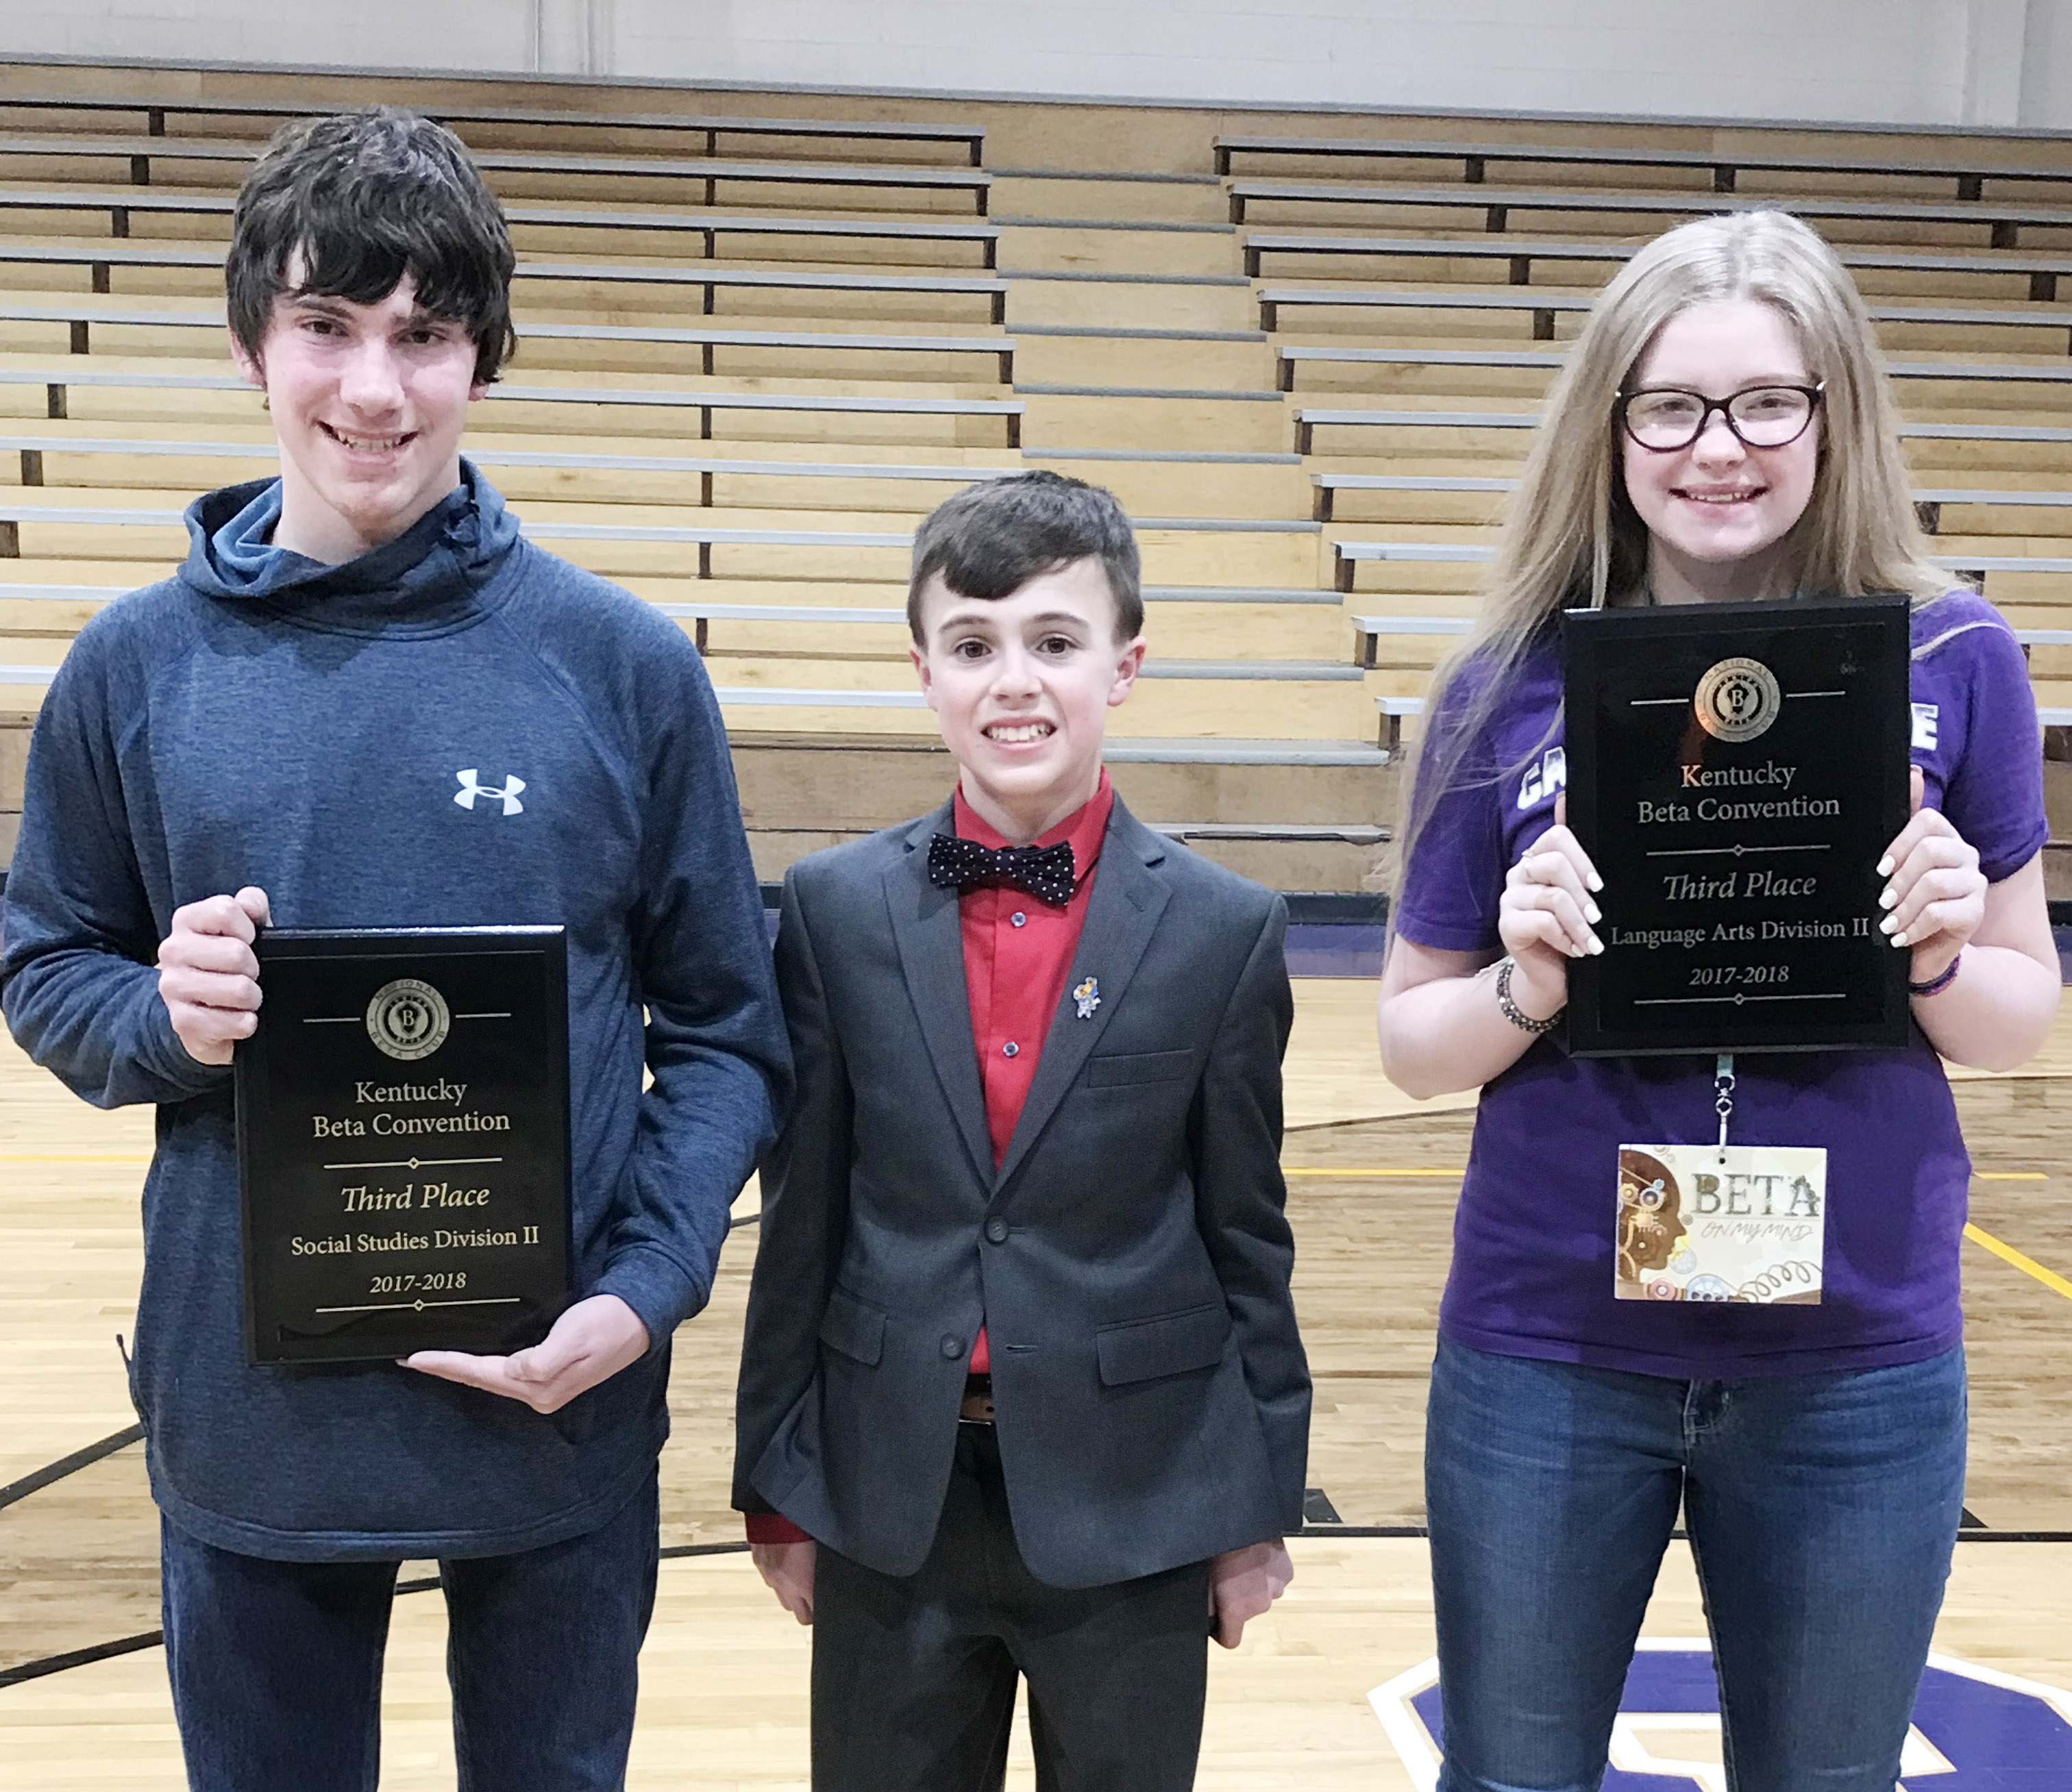 CMS seventh-grader Chase Hord, center, made history at this year's Kentucky Junior Beta convention. Hord, center, was elected secretary and becomes the first CMS student to win a state office. Eighth-grader Peyton Dabney, at left, won third place in the social studies competition and seventh-grader Whitney Frashure won third place in language arts. Hord, Dabney and Frashure all advance to compete at the National Junior Beta convention in Savannah, Ga., on June 13-16.